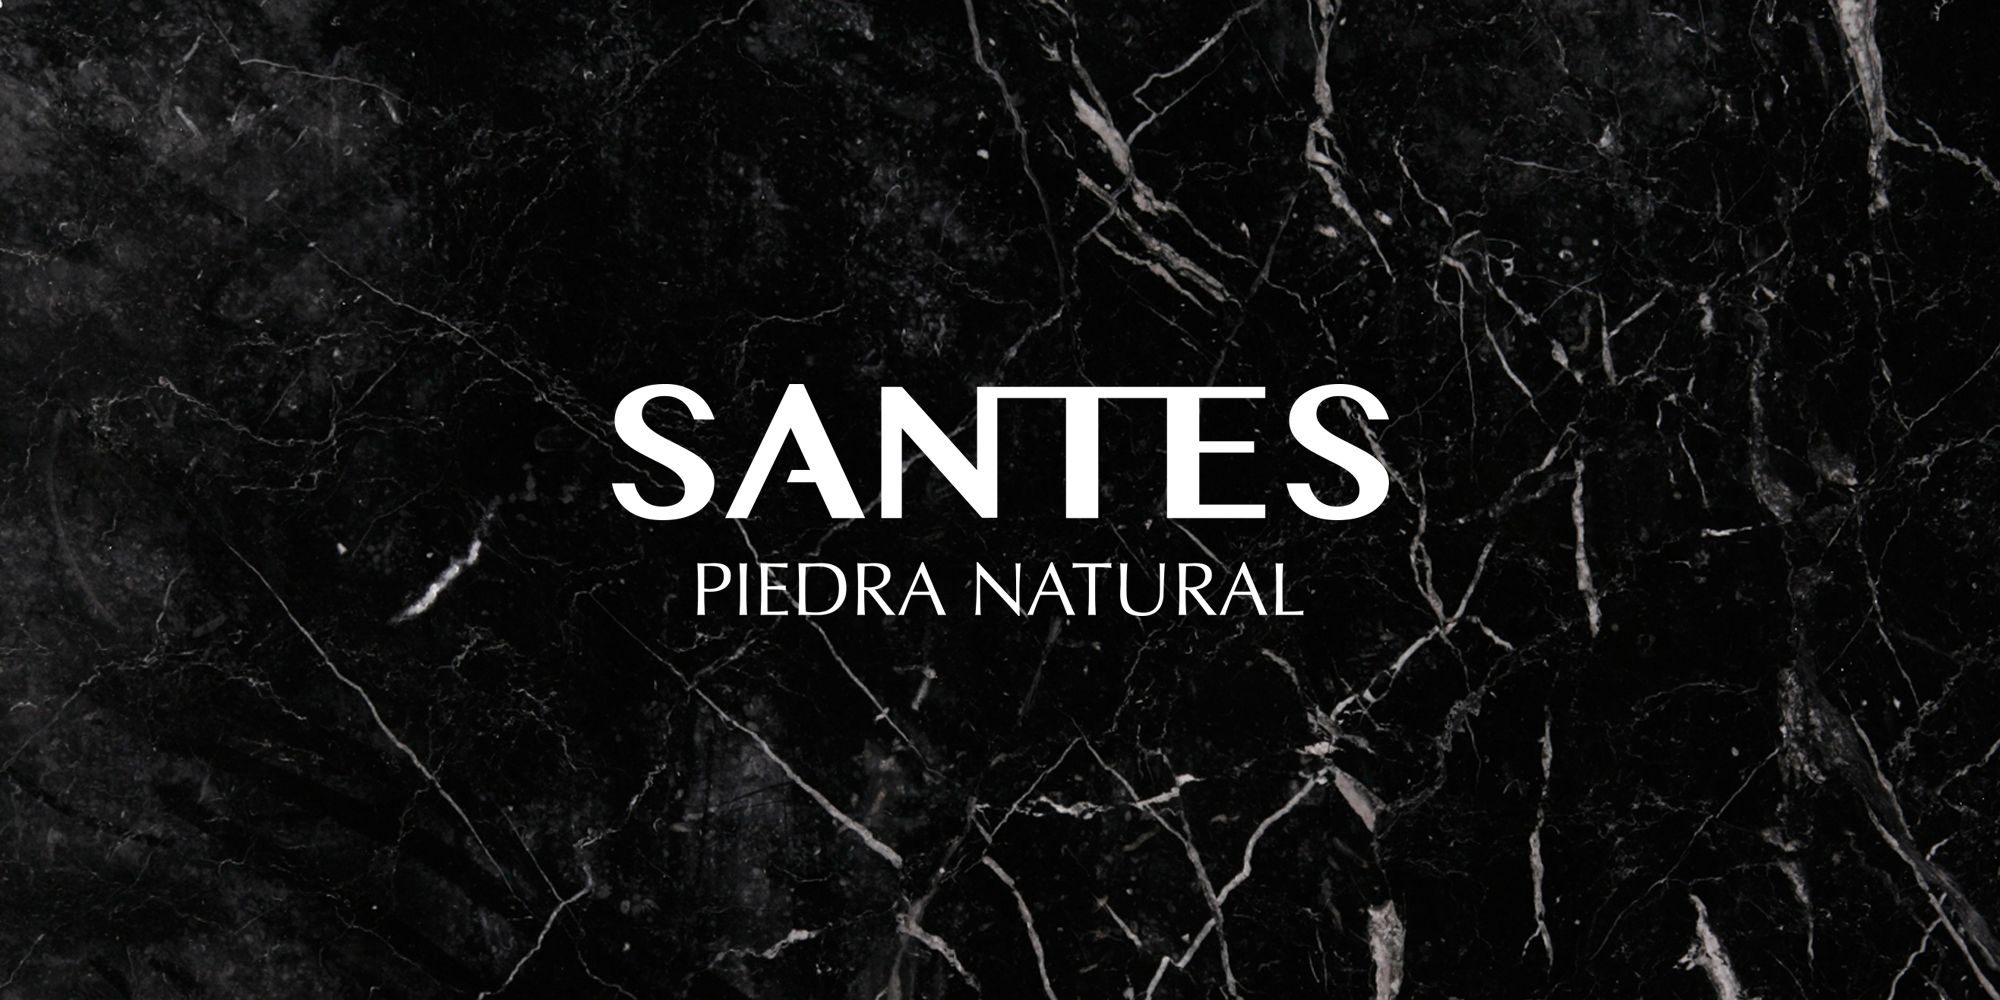 Santes Piedra Natural